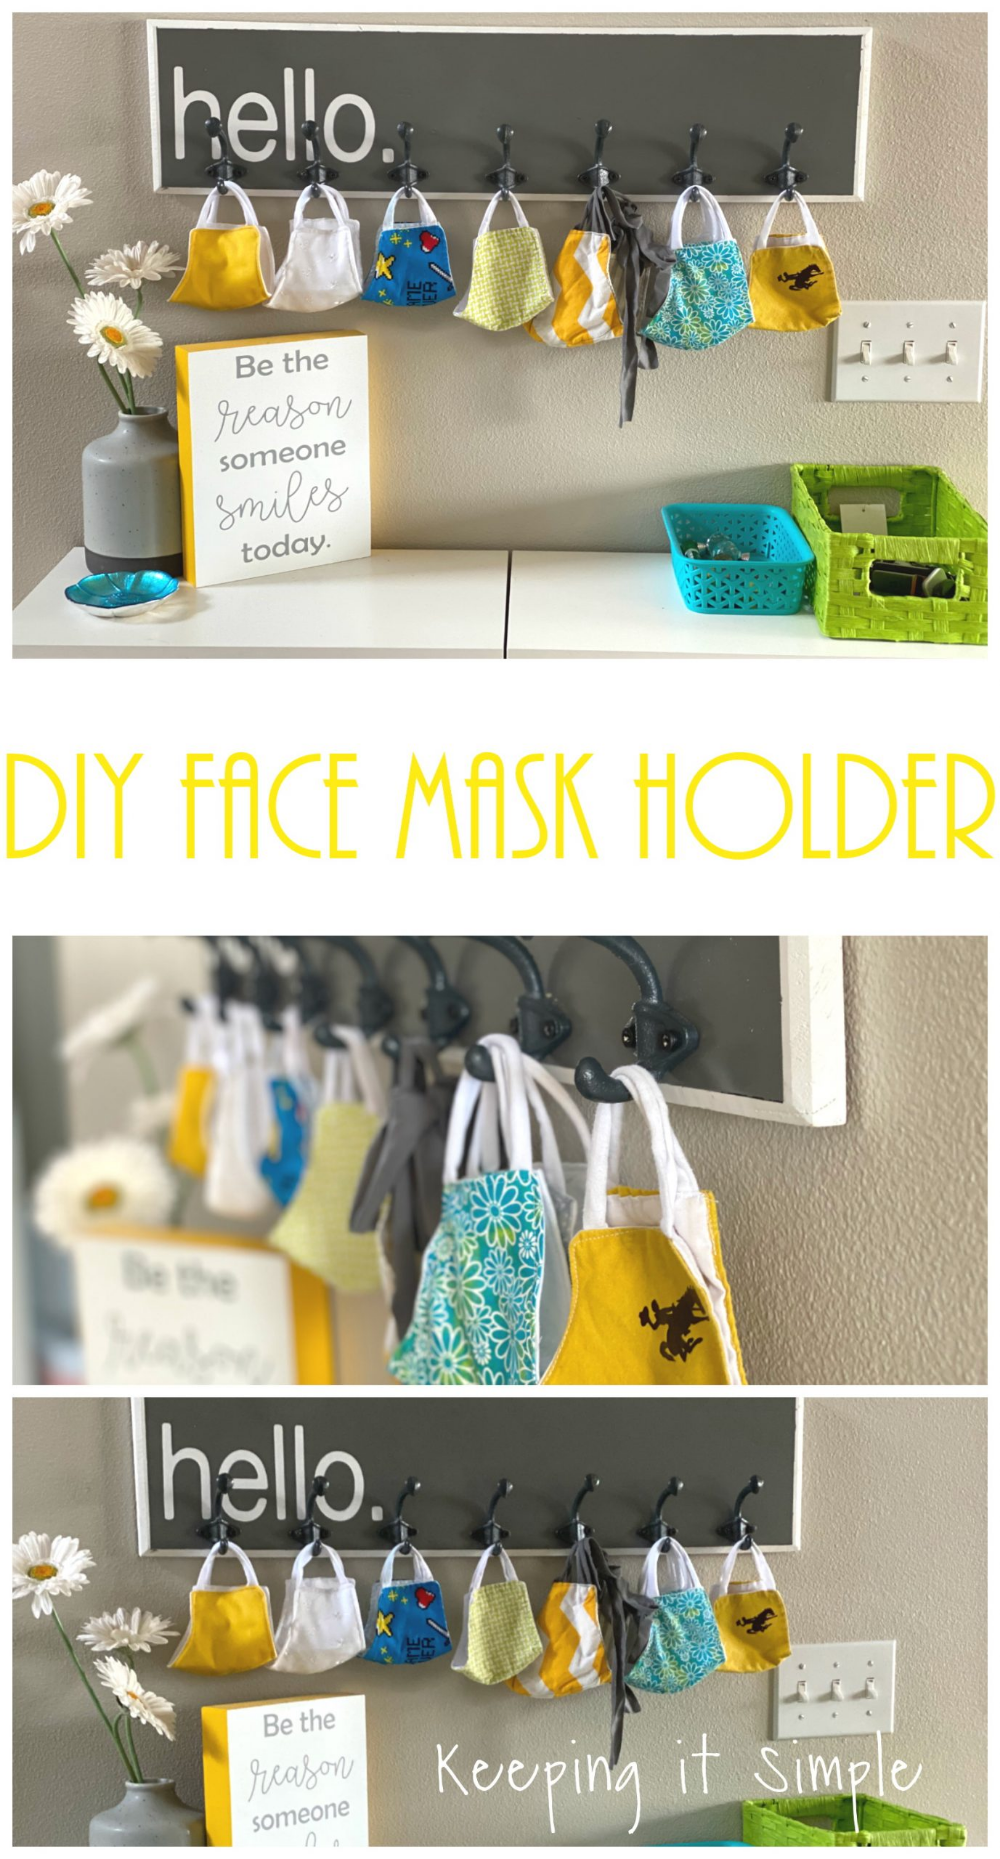 Diy Face Mask Holder And Organizer Keeping It Simple In 2020 Diy Face Mask Diy Holder Diy Face